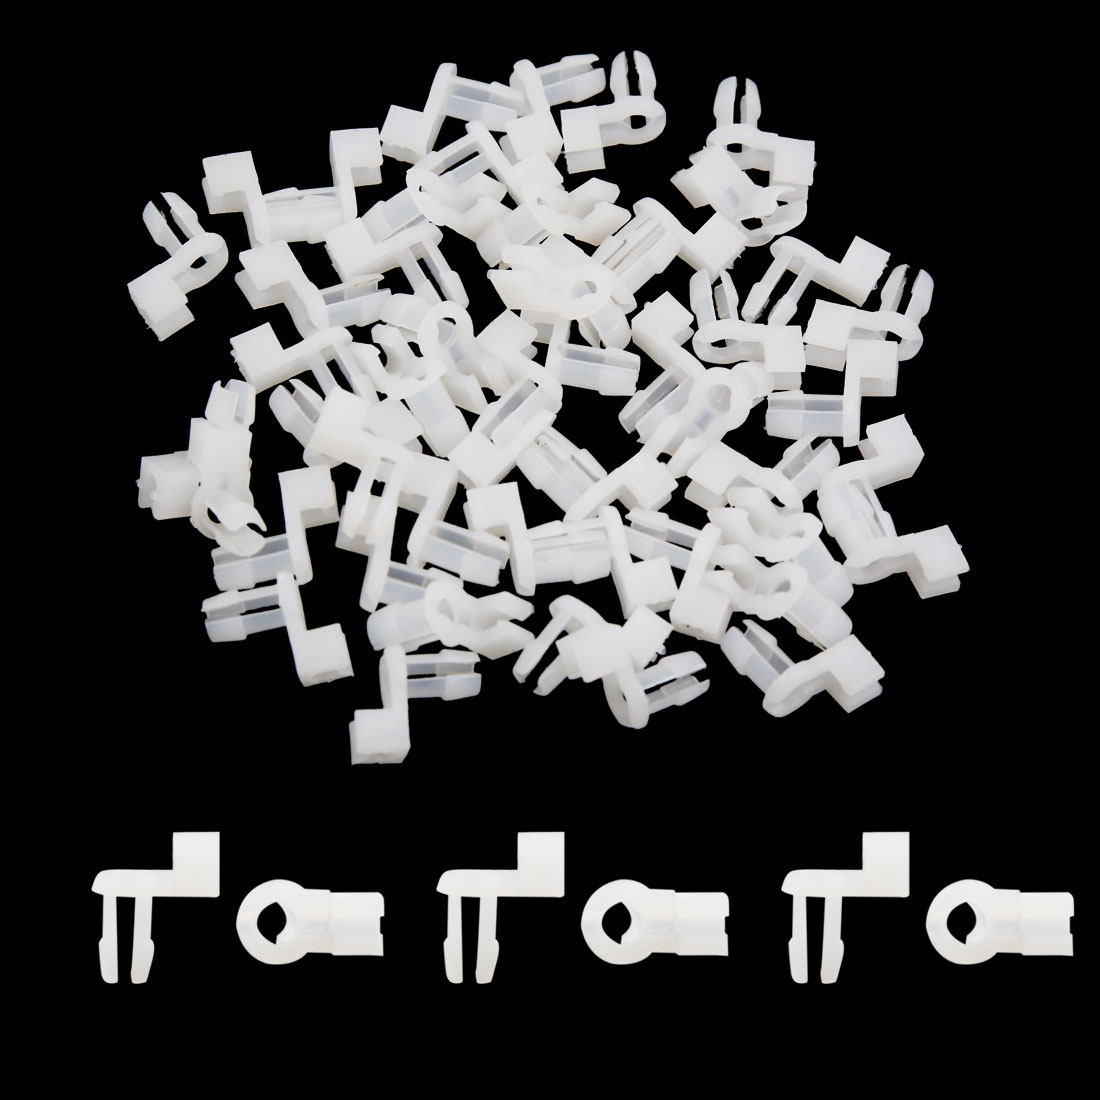 50Pcs Plastic Rivets Fastener Clips Engine Lining Retainer White 5mm for Car - image 1 de 3